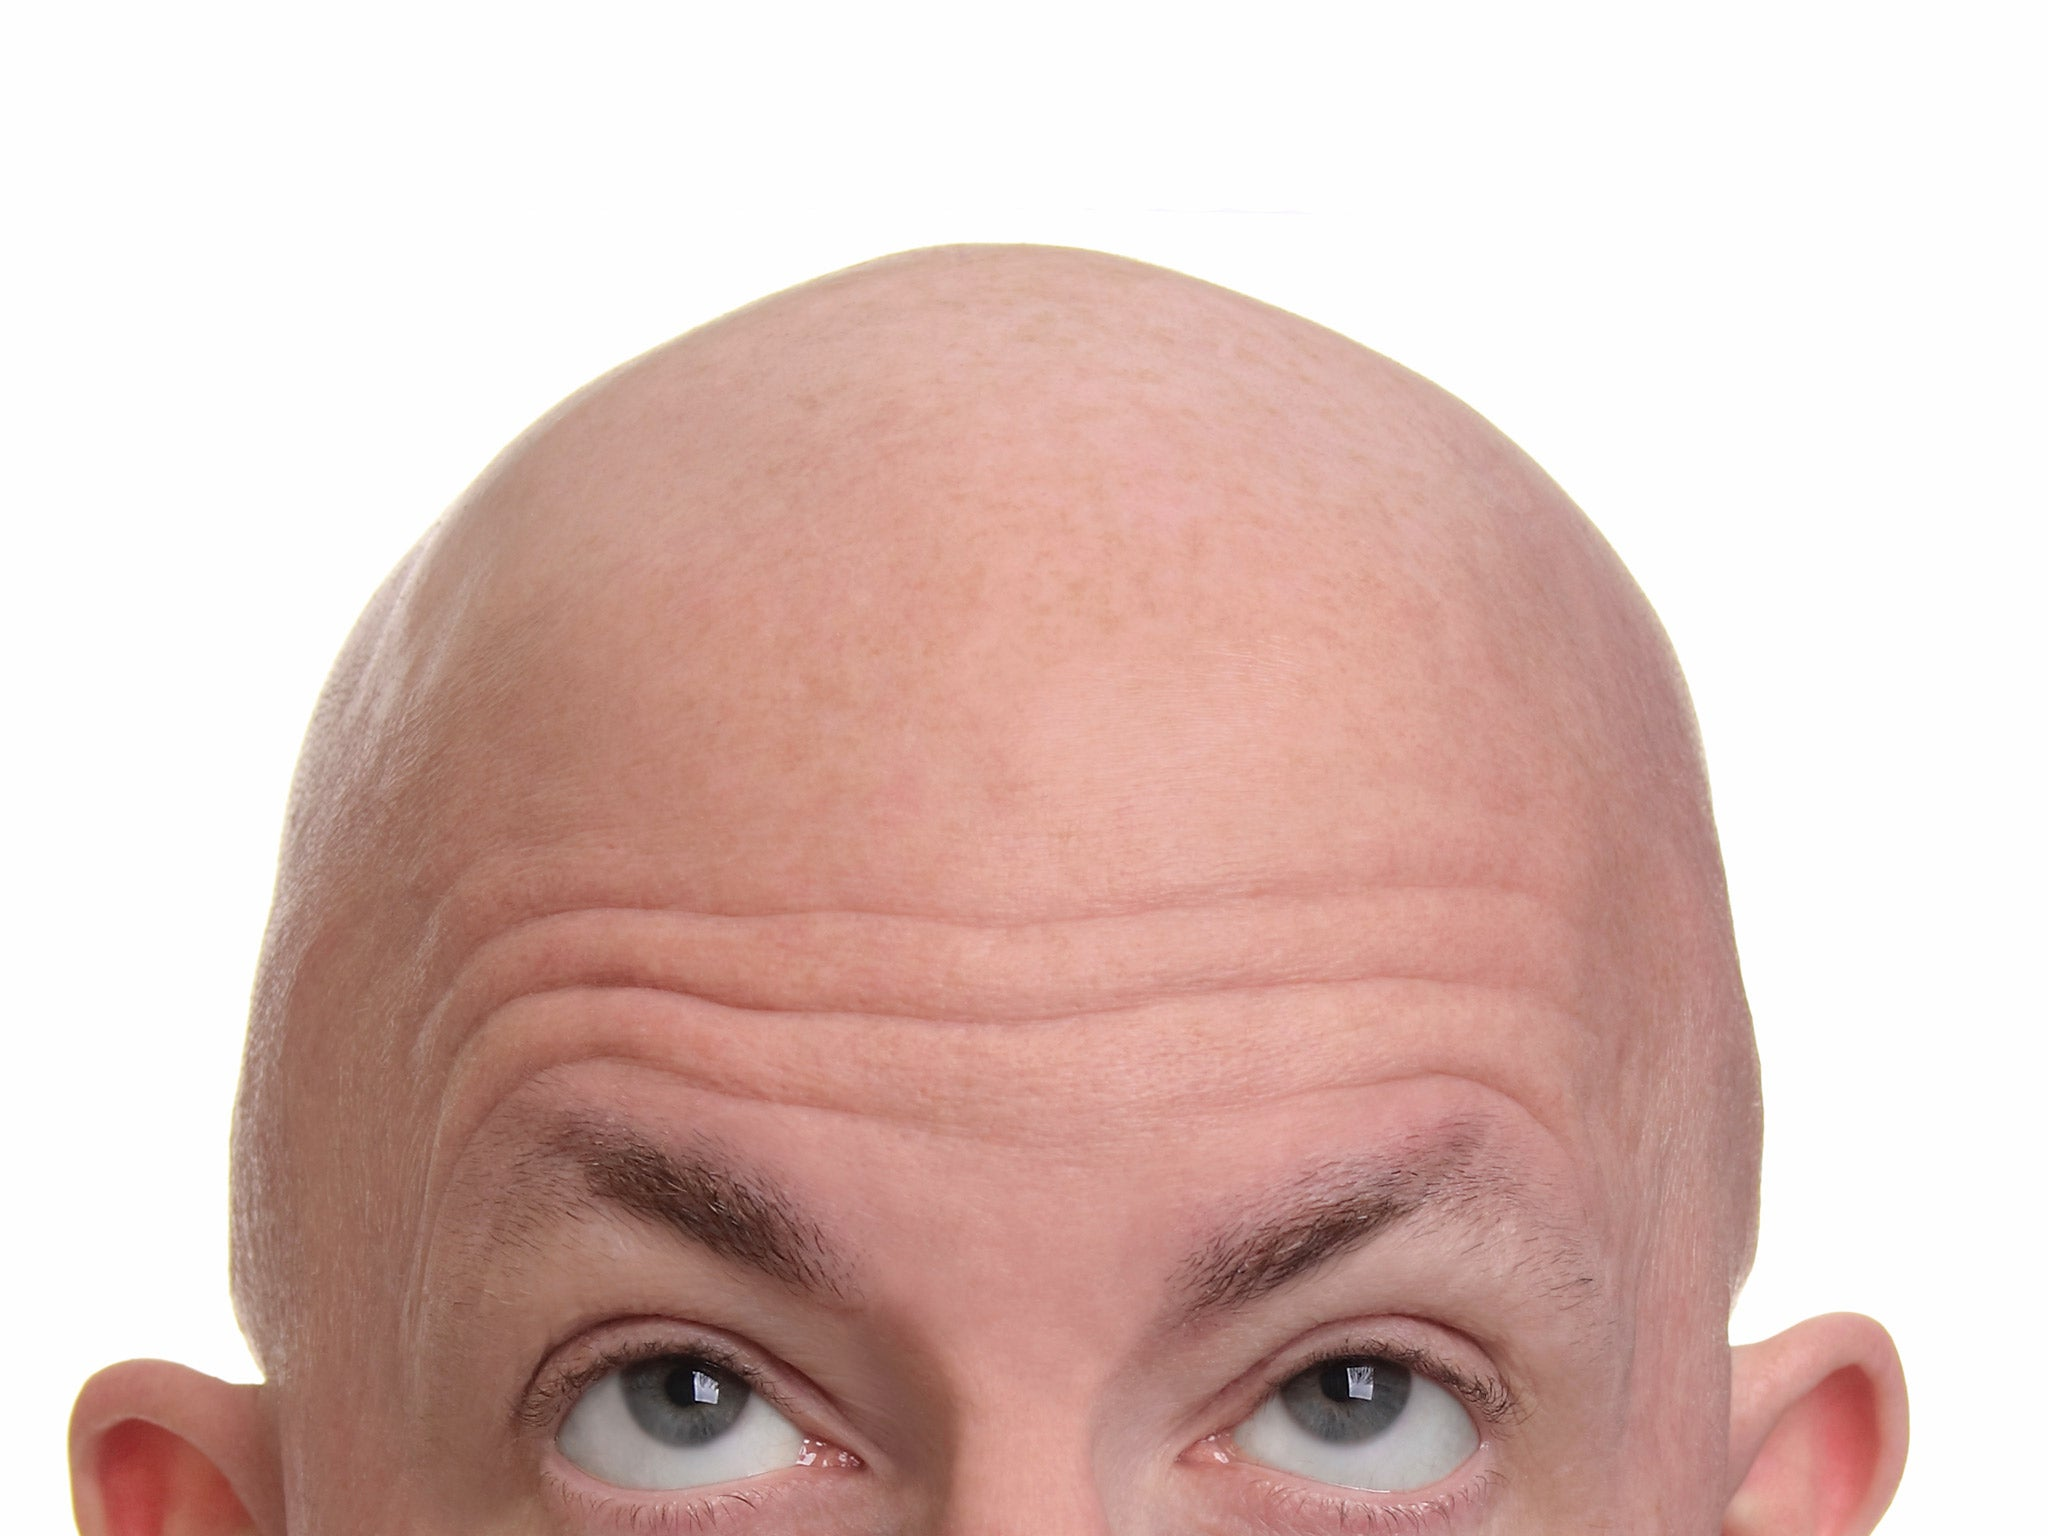 But First What is Male Pattern Baldness